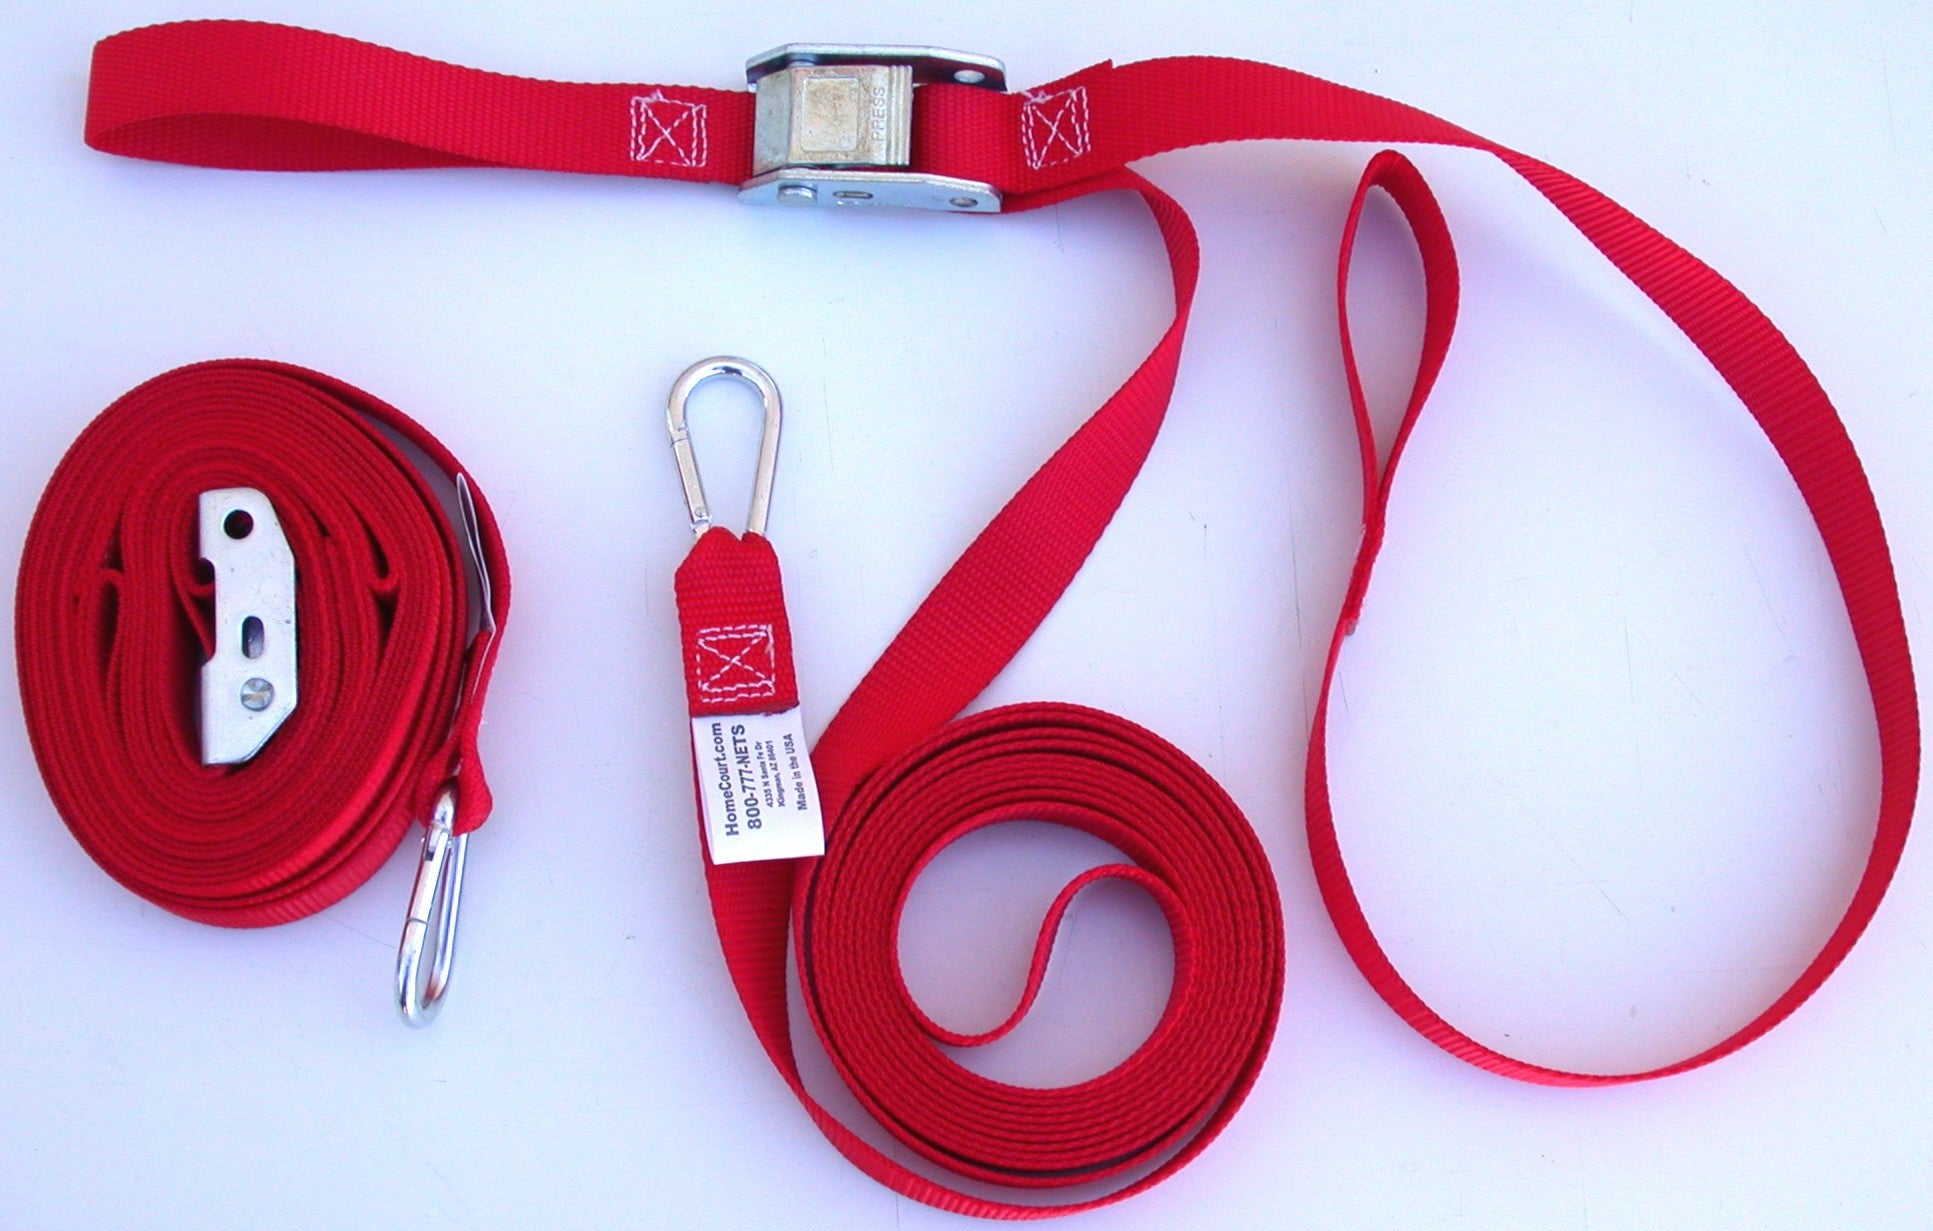 8LSLGS-pair of red 1-inch webbing ratchet-buckle guy lines spring snap connection